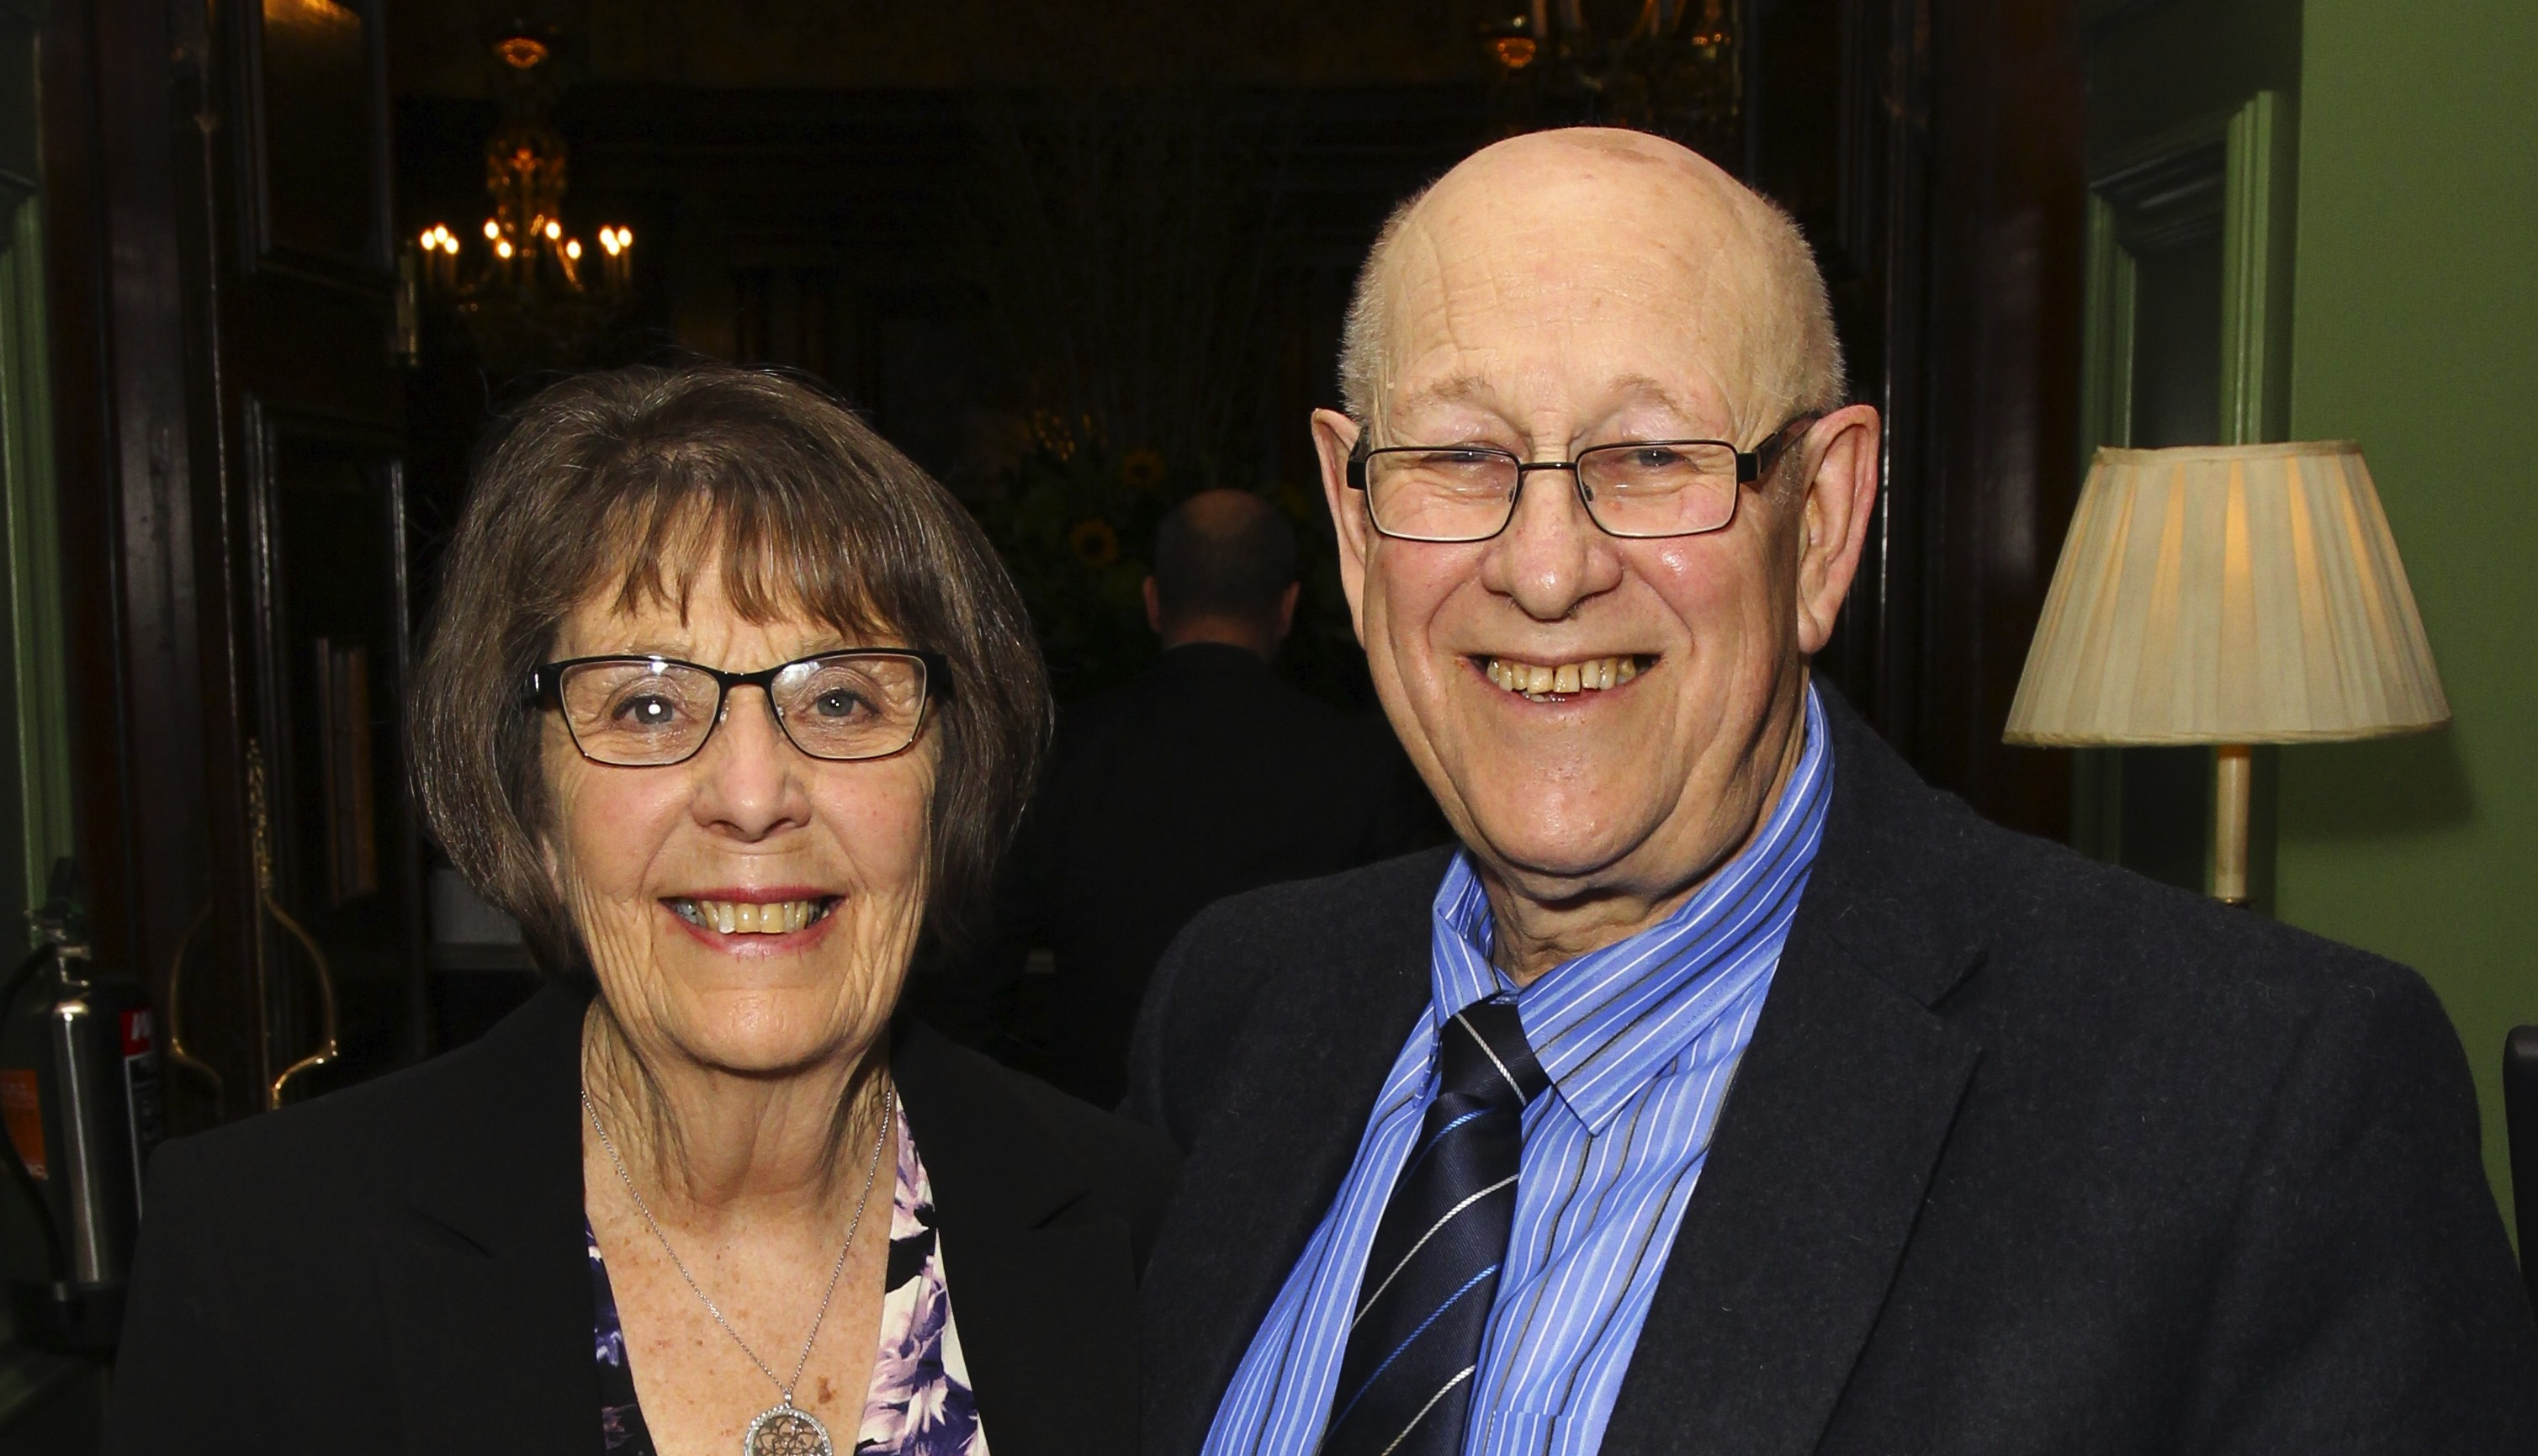 Gogglebox's June Bernicoff is leaving the home she shared with late husband Leon